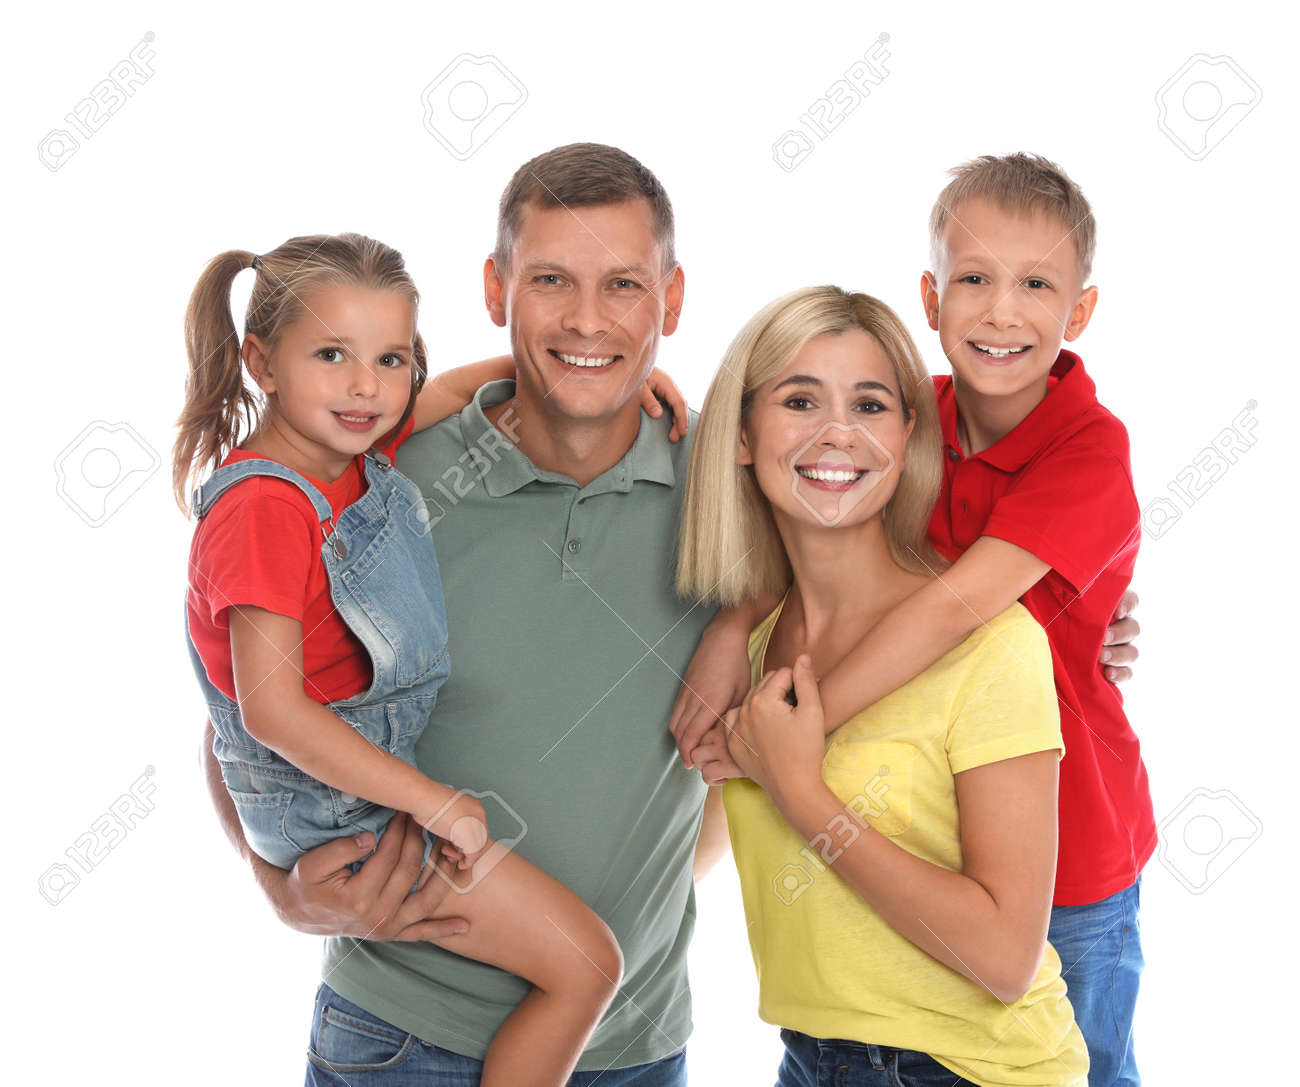 Happy family with children on white background - 156577969